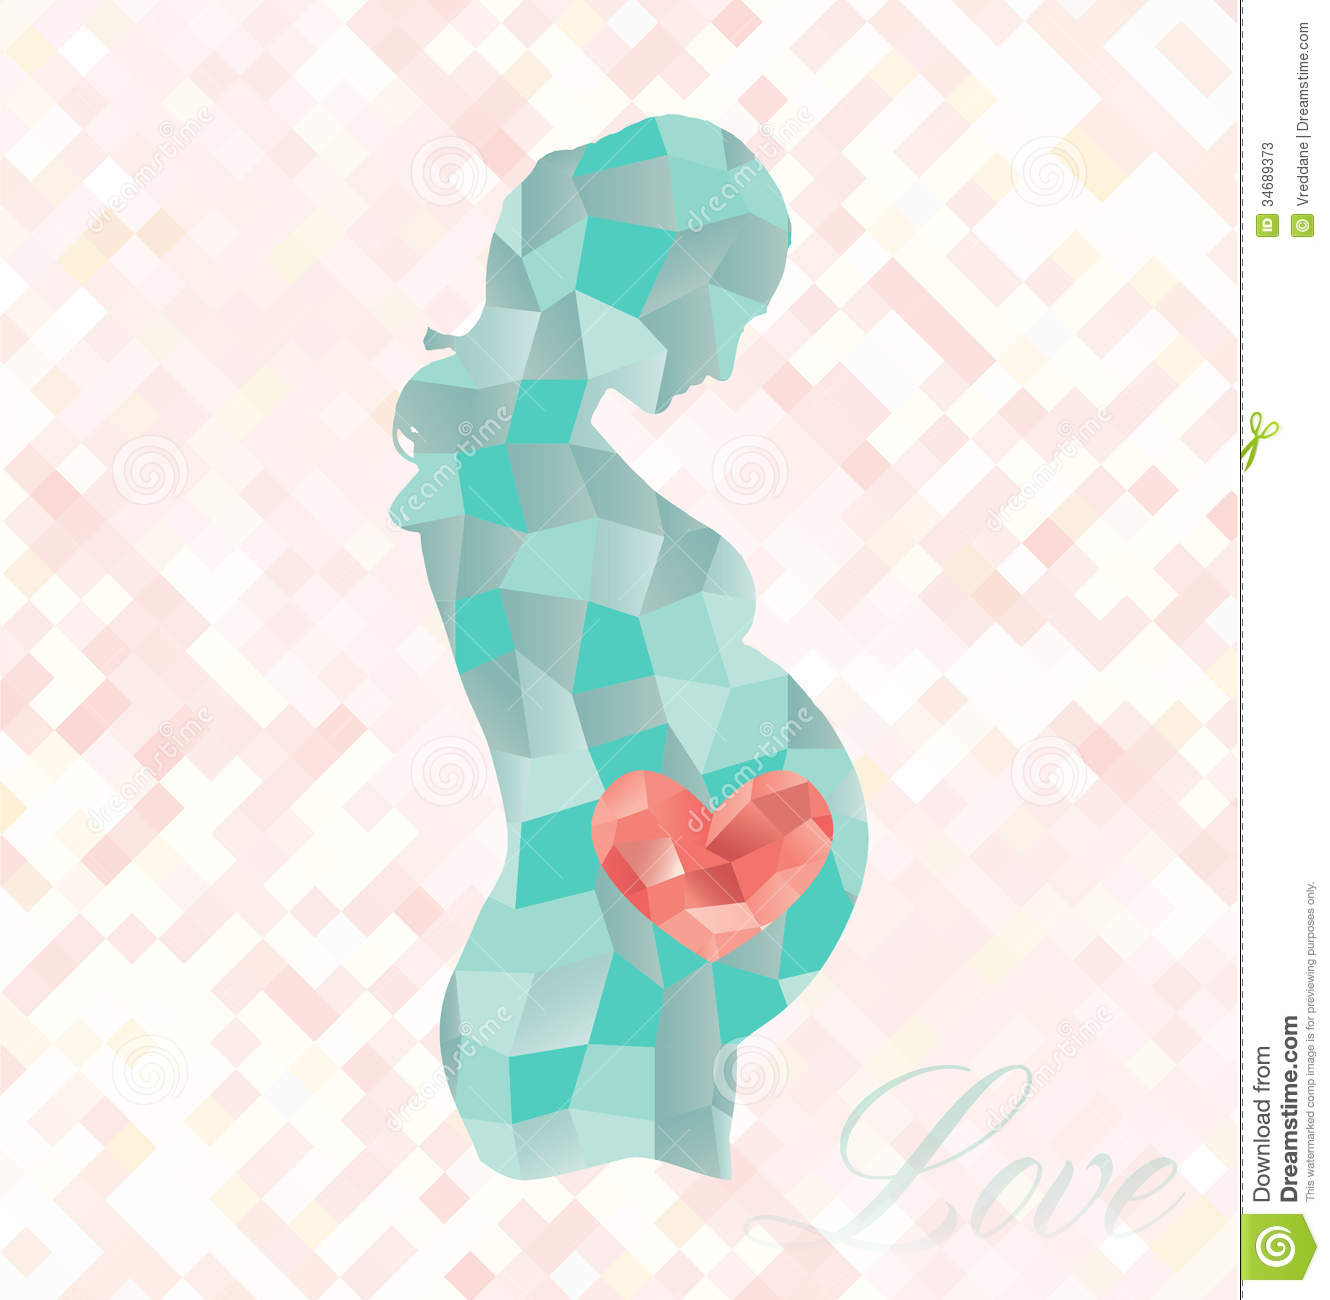 Pregnant Woman Heart On Belly Clipart.